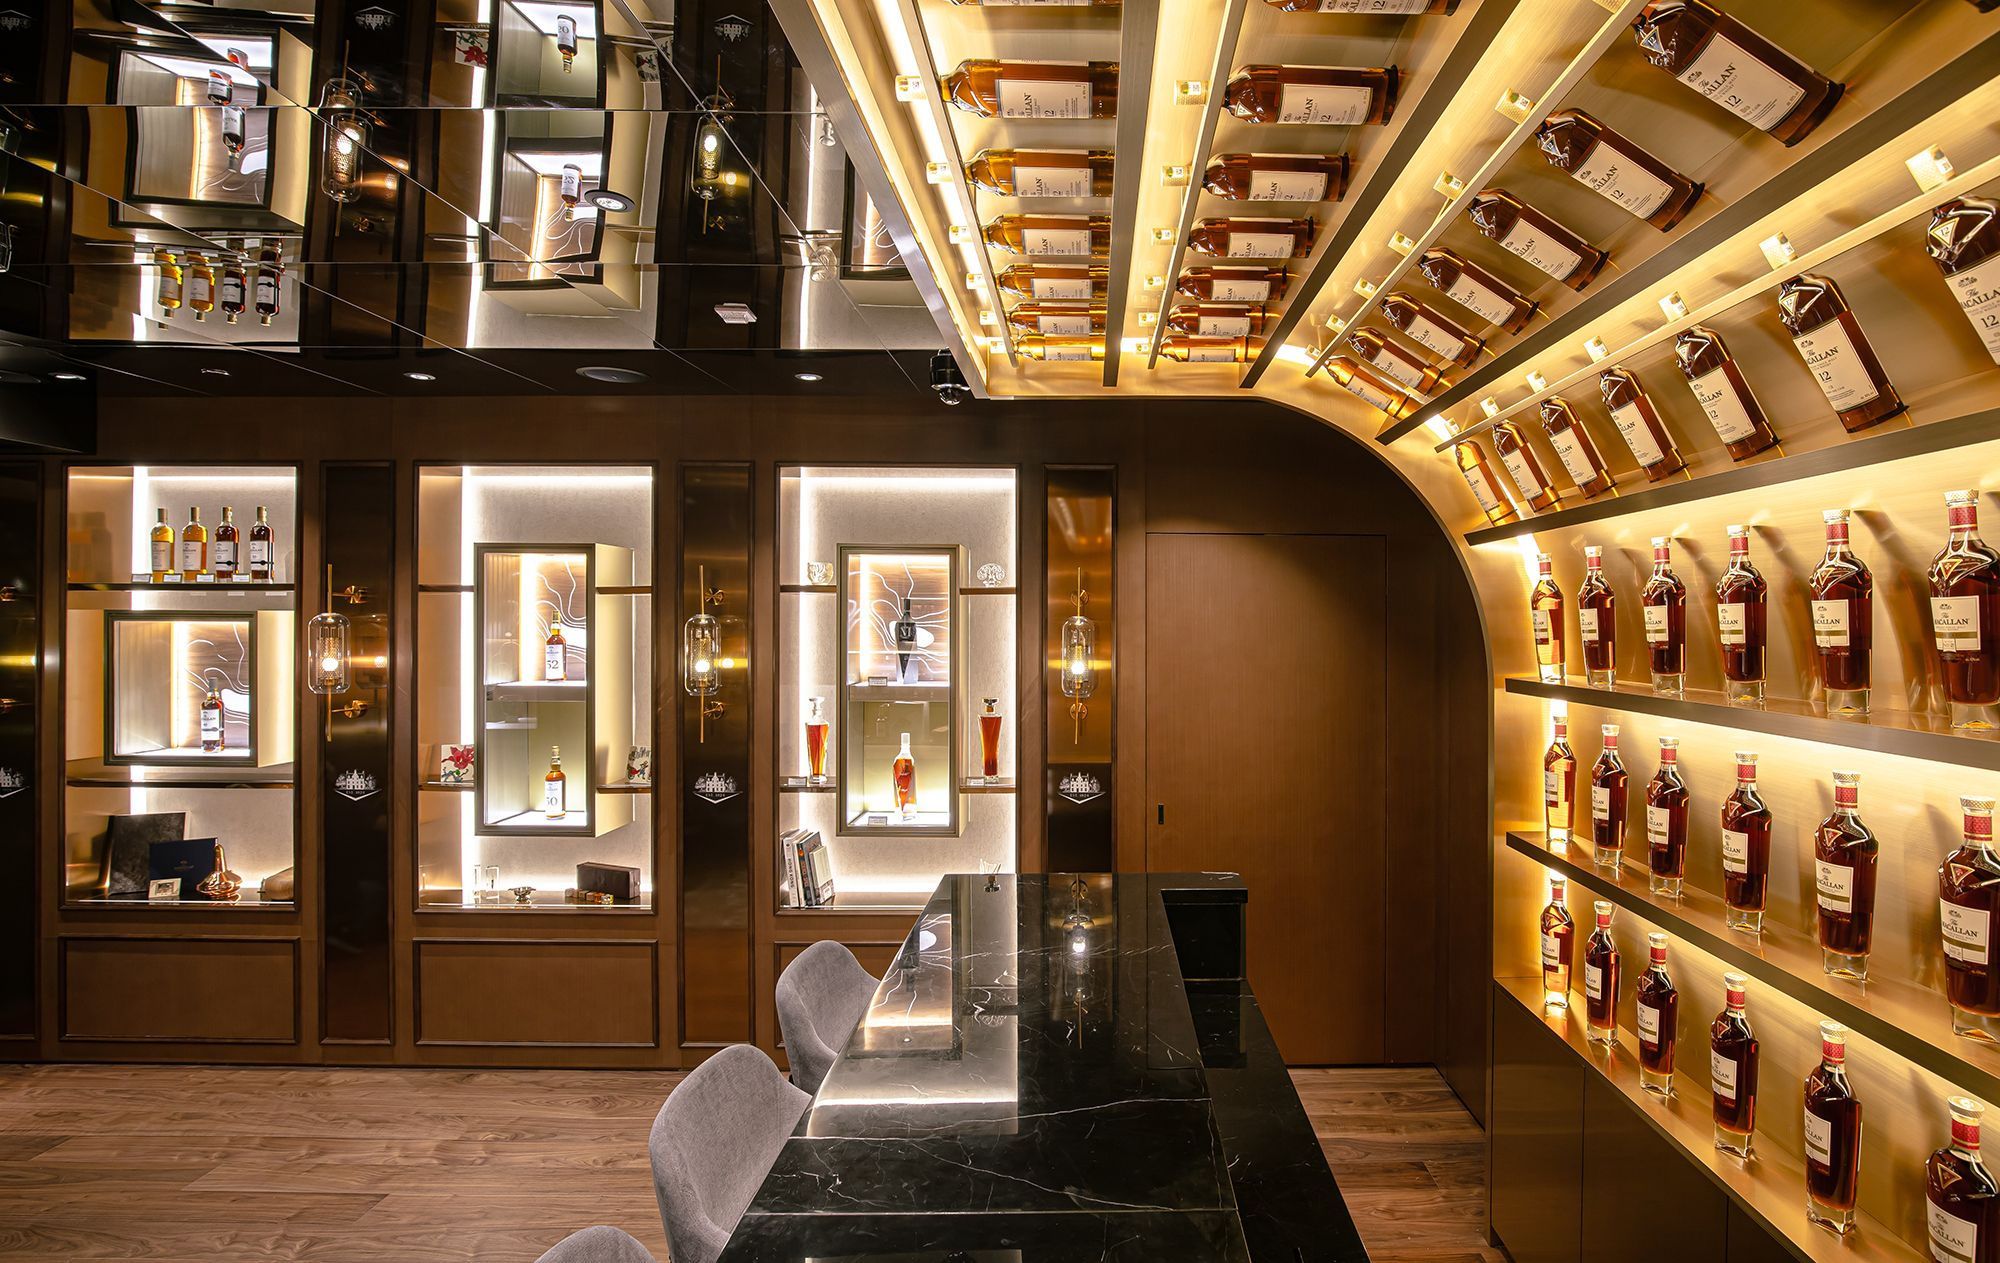 The Macallan Room In K11 Musea Offers An Escape To The Scottish Highlands